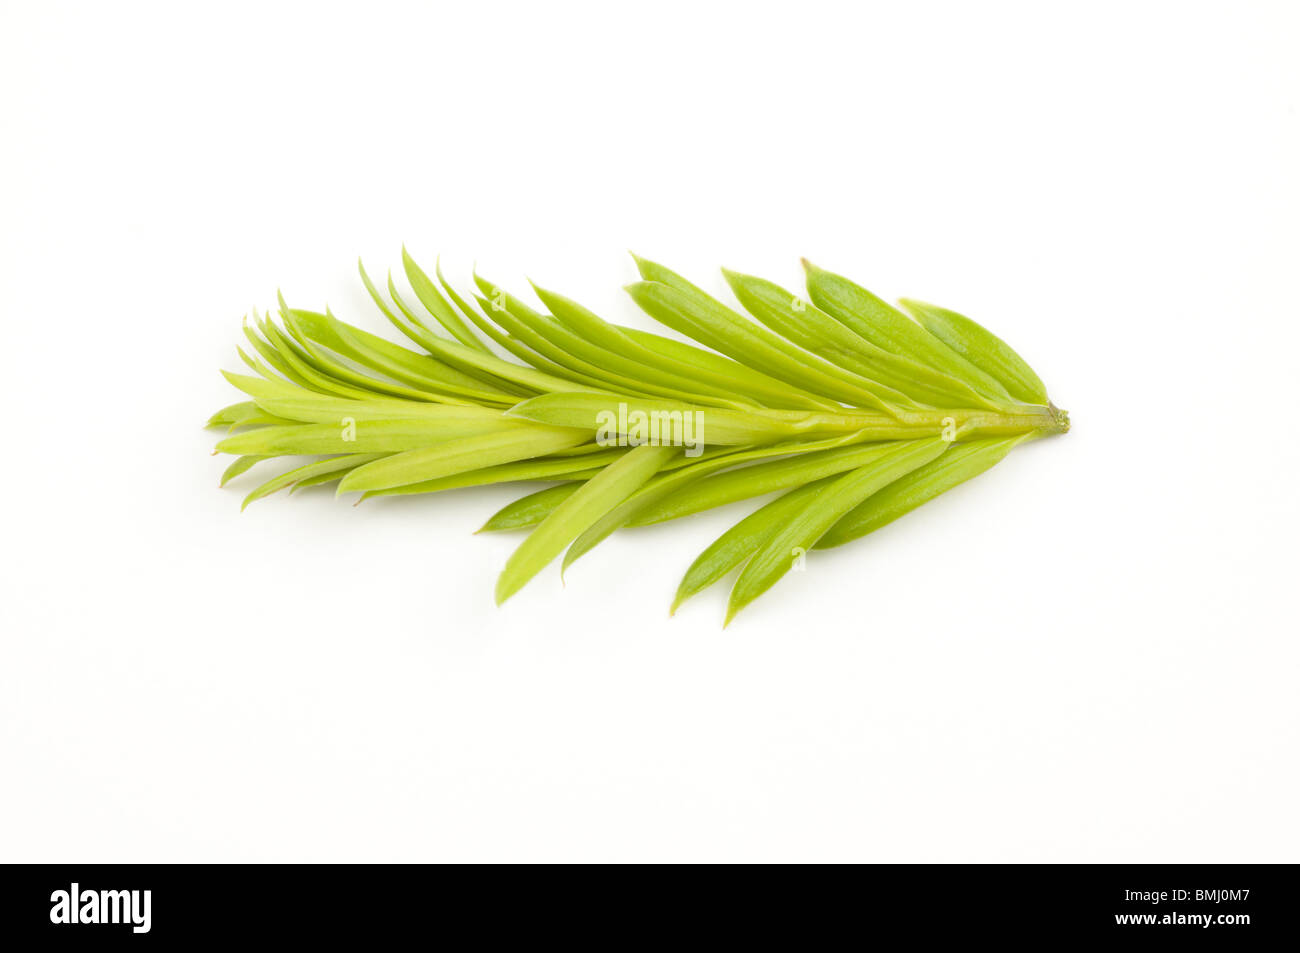 Isolated young shoot of spruce - Stock Image